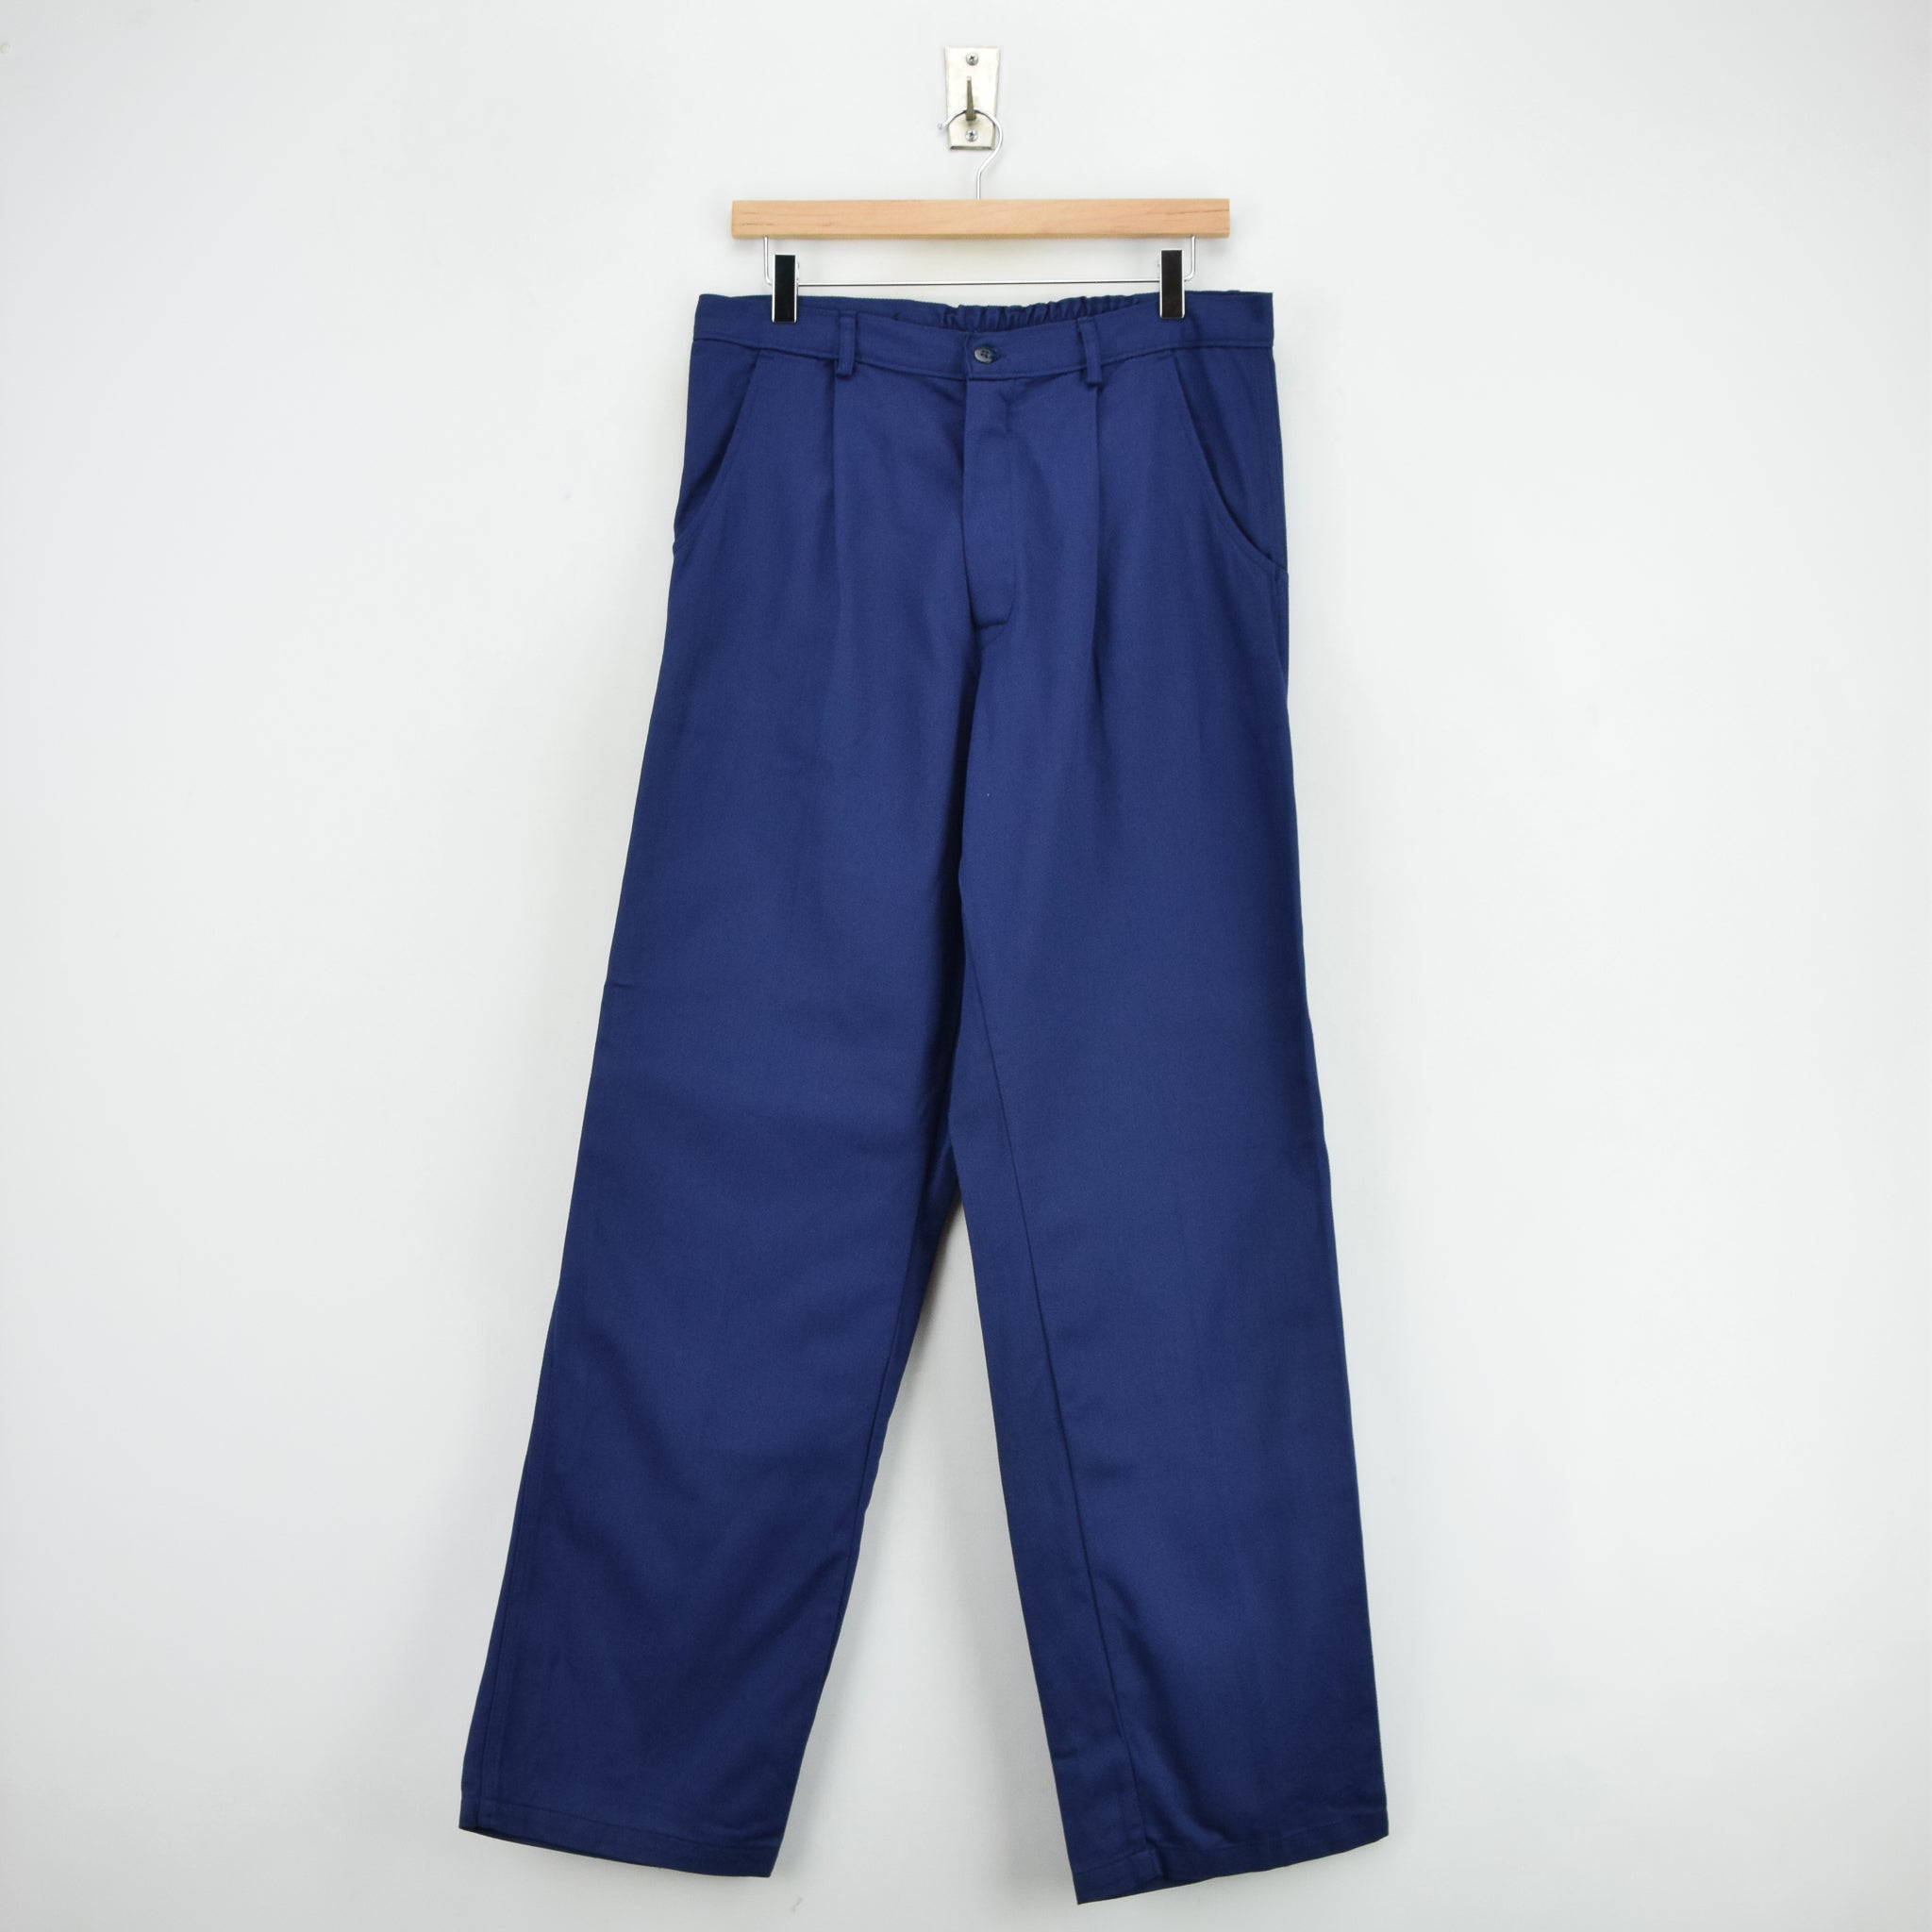 Vintage Workwear Deadstock Blue French Style Work Utility Trousers 32 W 32 L front